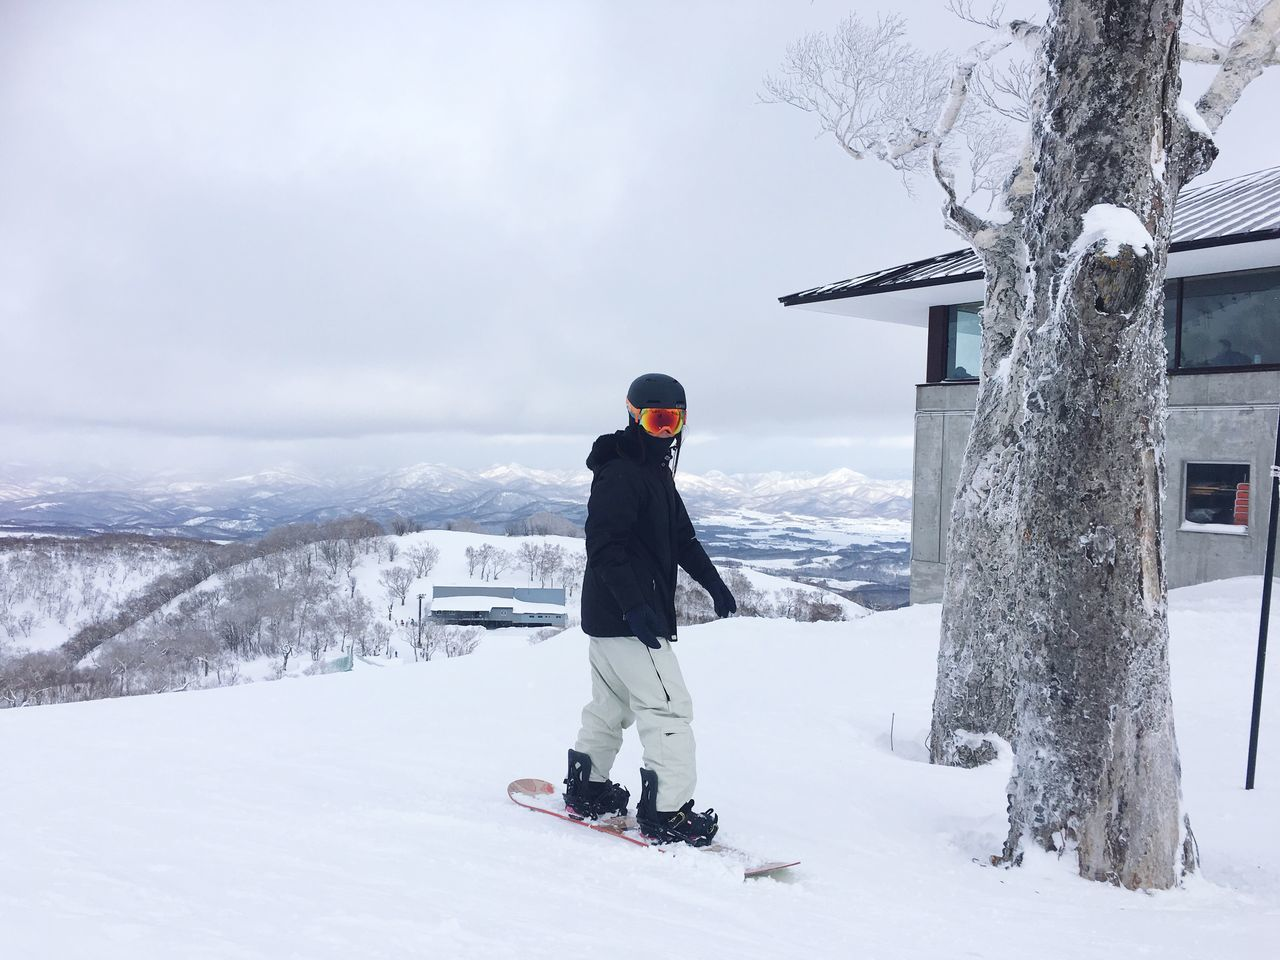 Snowboard Winter Snow Low Angle View Cold Temperature Town Japan Niseko Hirafu High